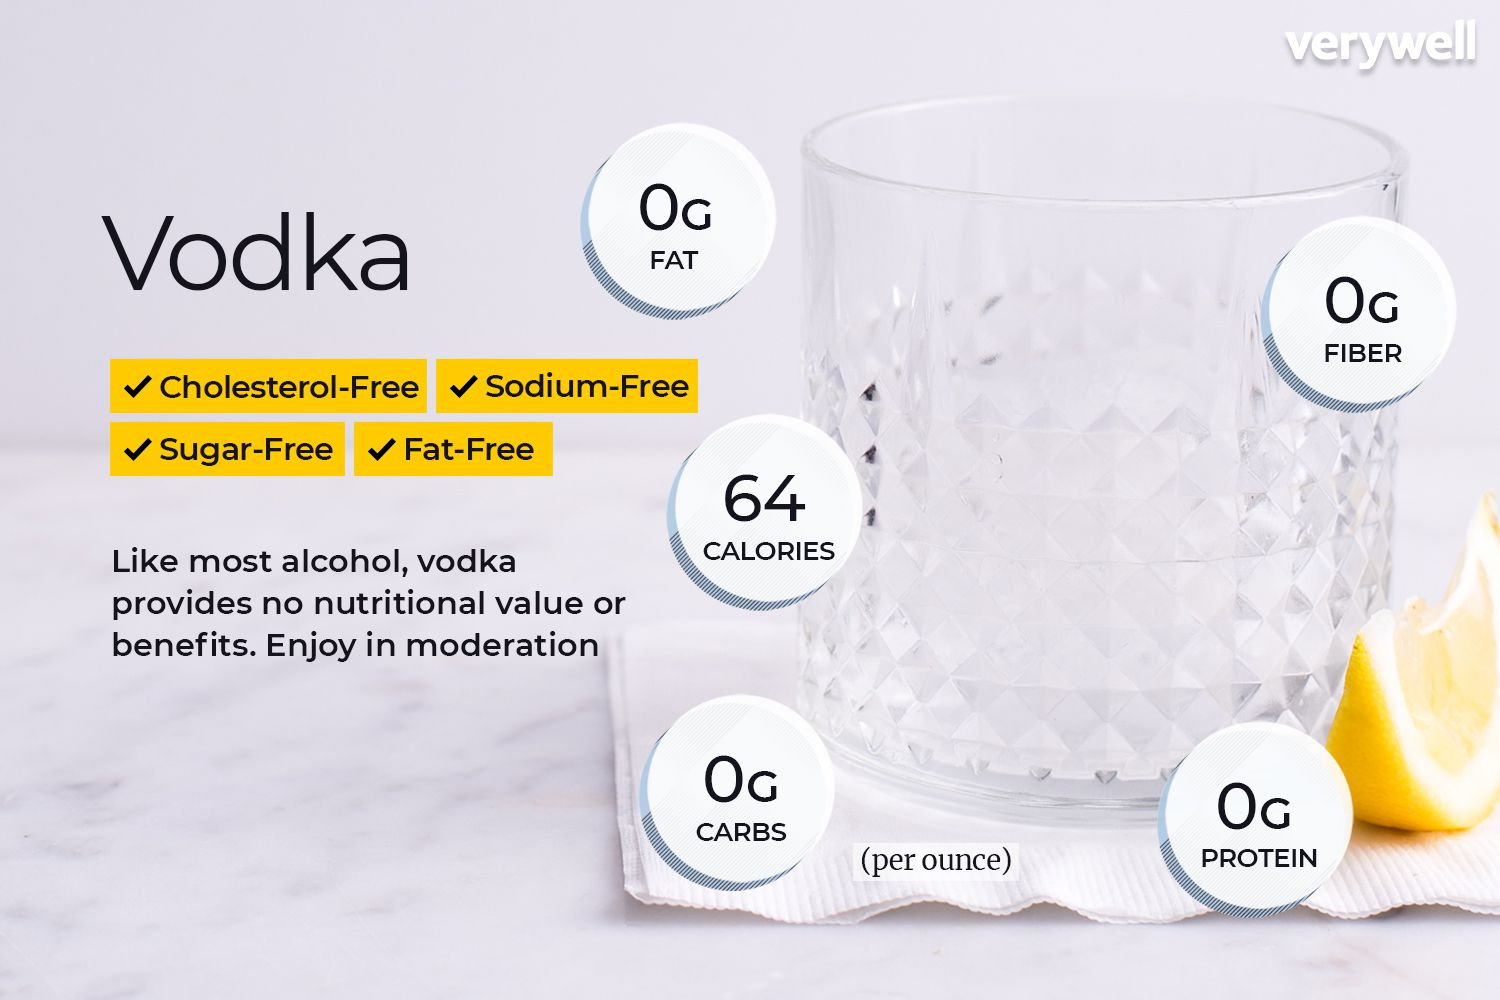 Vodka Nutrition Facts: Calories and